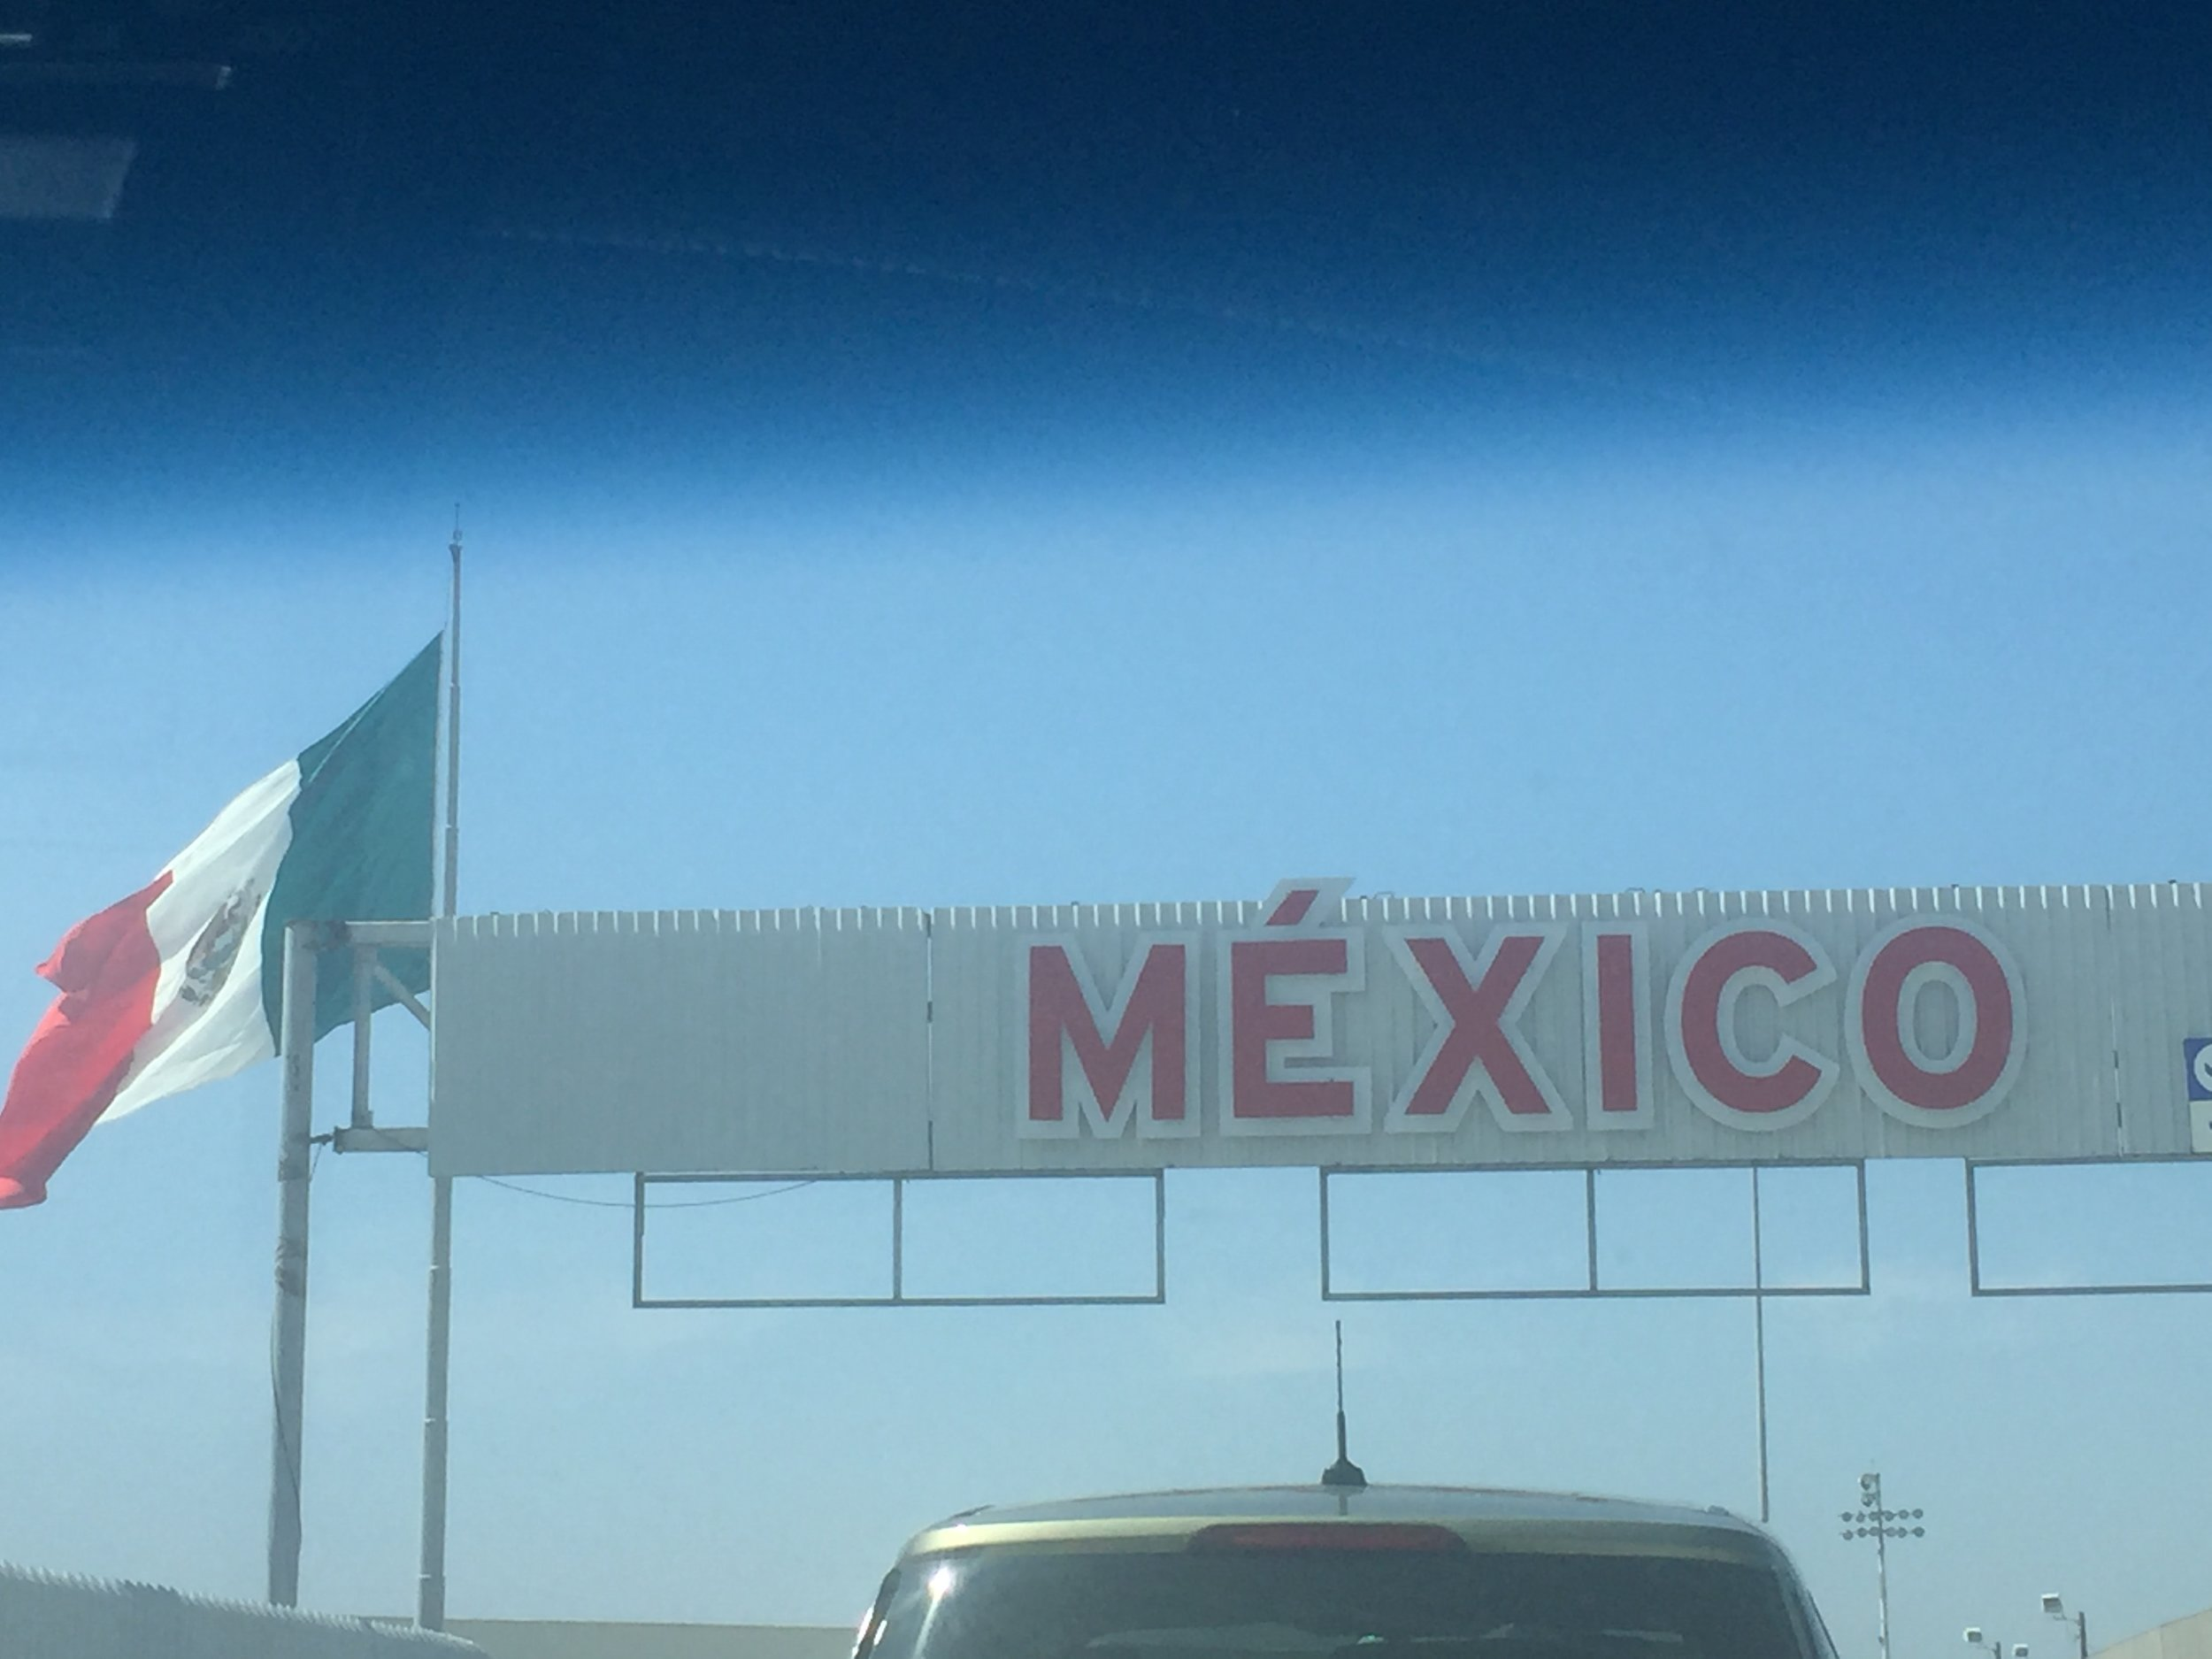 Crossing the border.